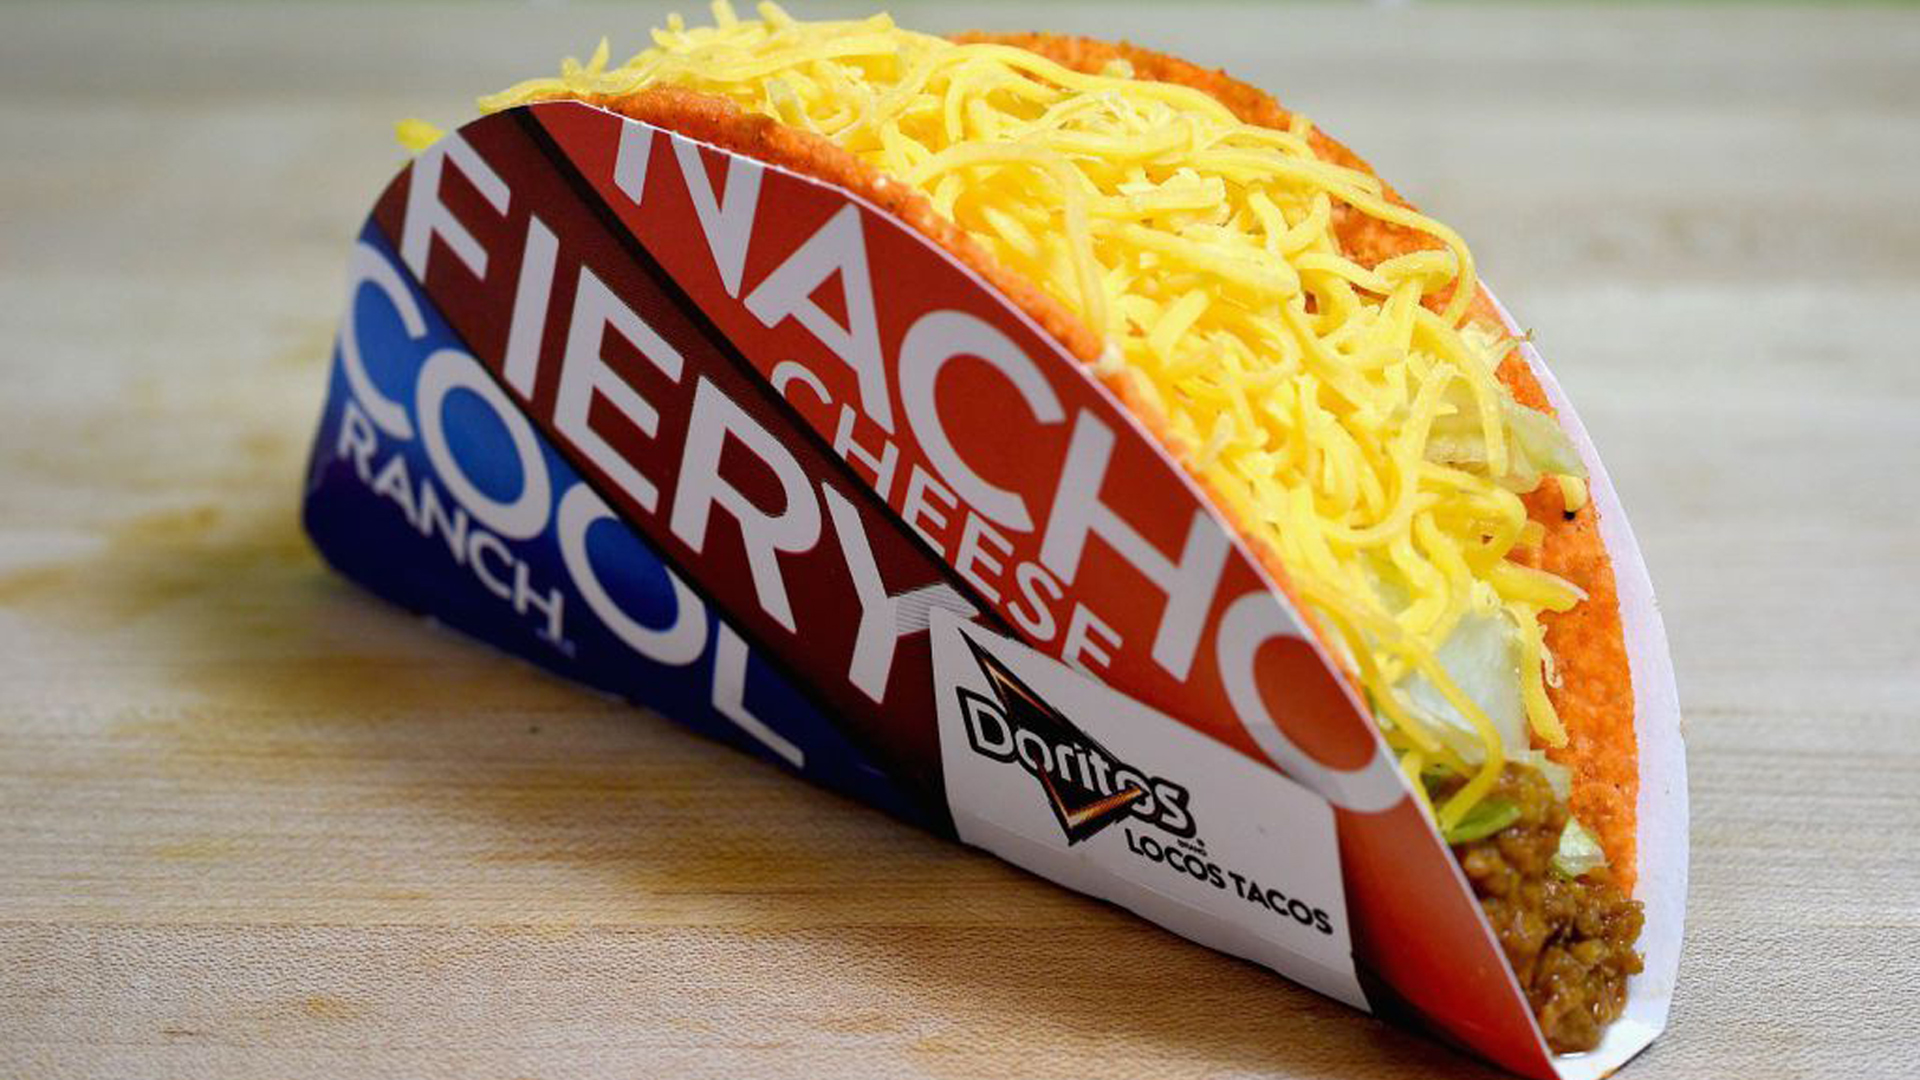 A promotional image of the Doritos Locos taco from Taco Bell.